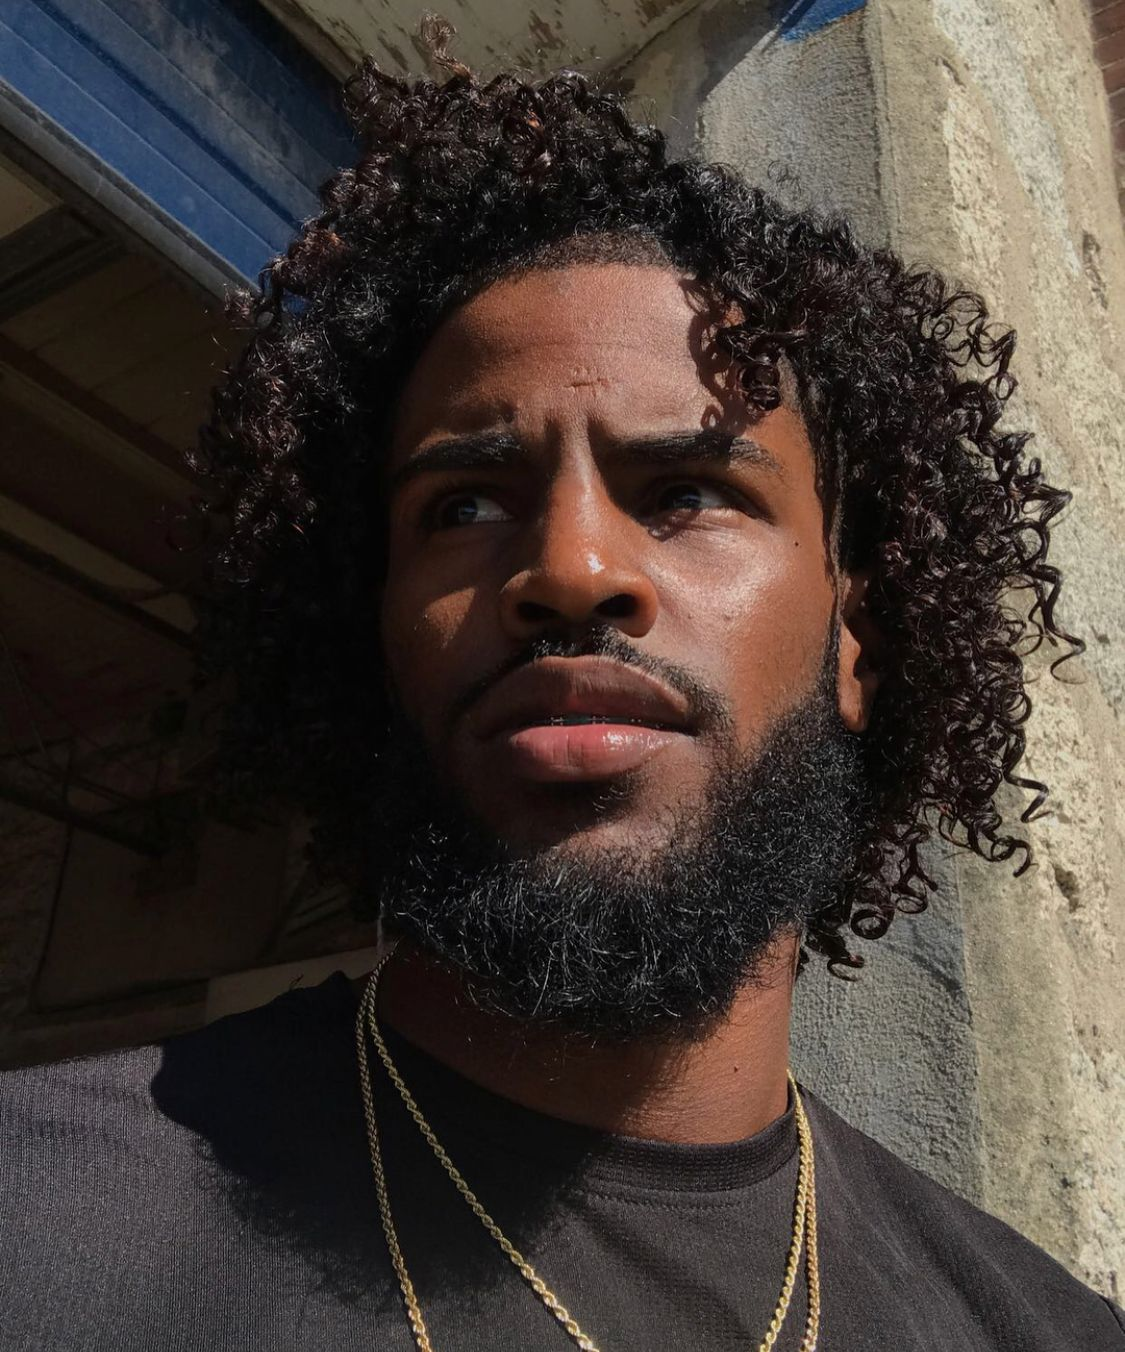 Pin By Tianna Barnett On Avec Moi With Images Curly Hair Men